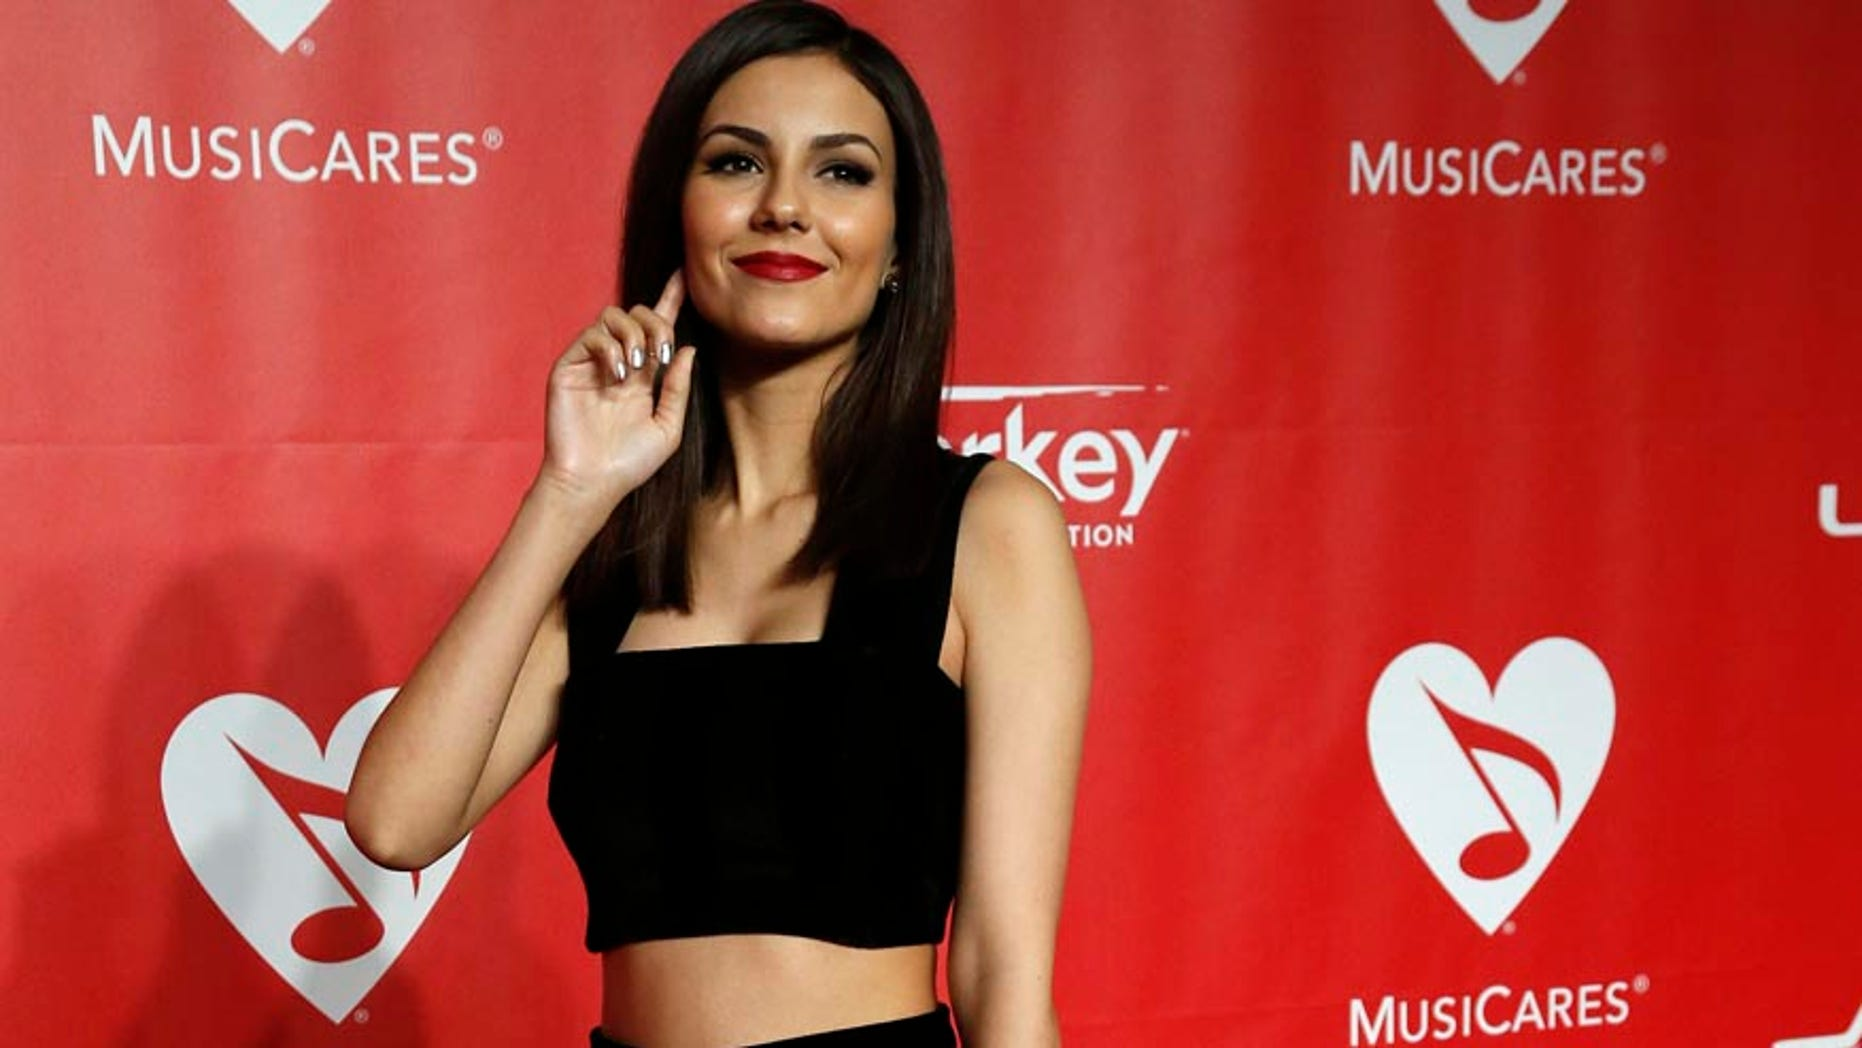 Actress Victoria Justice arrives at the 2015 MusiCares Person of the Year tribute honoring Bob Dylan in Los Angeles, California February 6, 2015.  REUTERS/Mario Anzuoni (UNITED STATES  - Tags: ENTERTAINMENT)   - RTR4OKKY